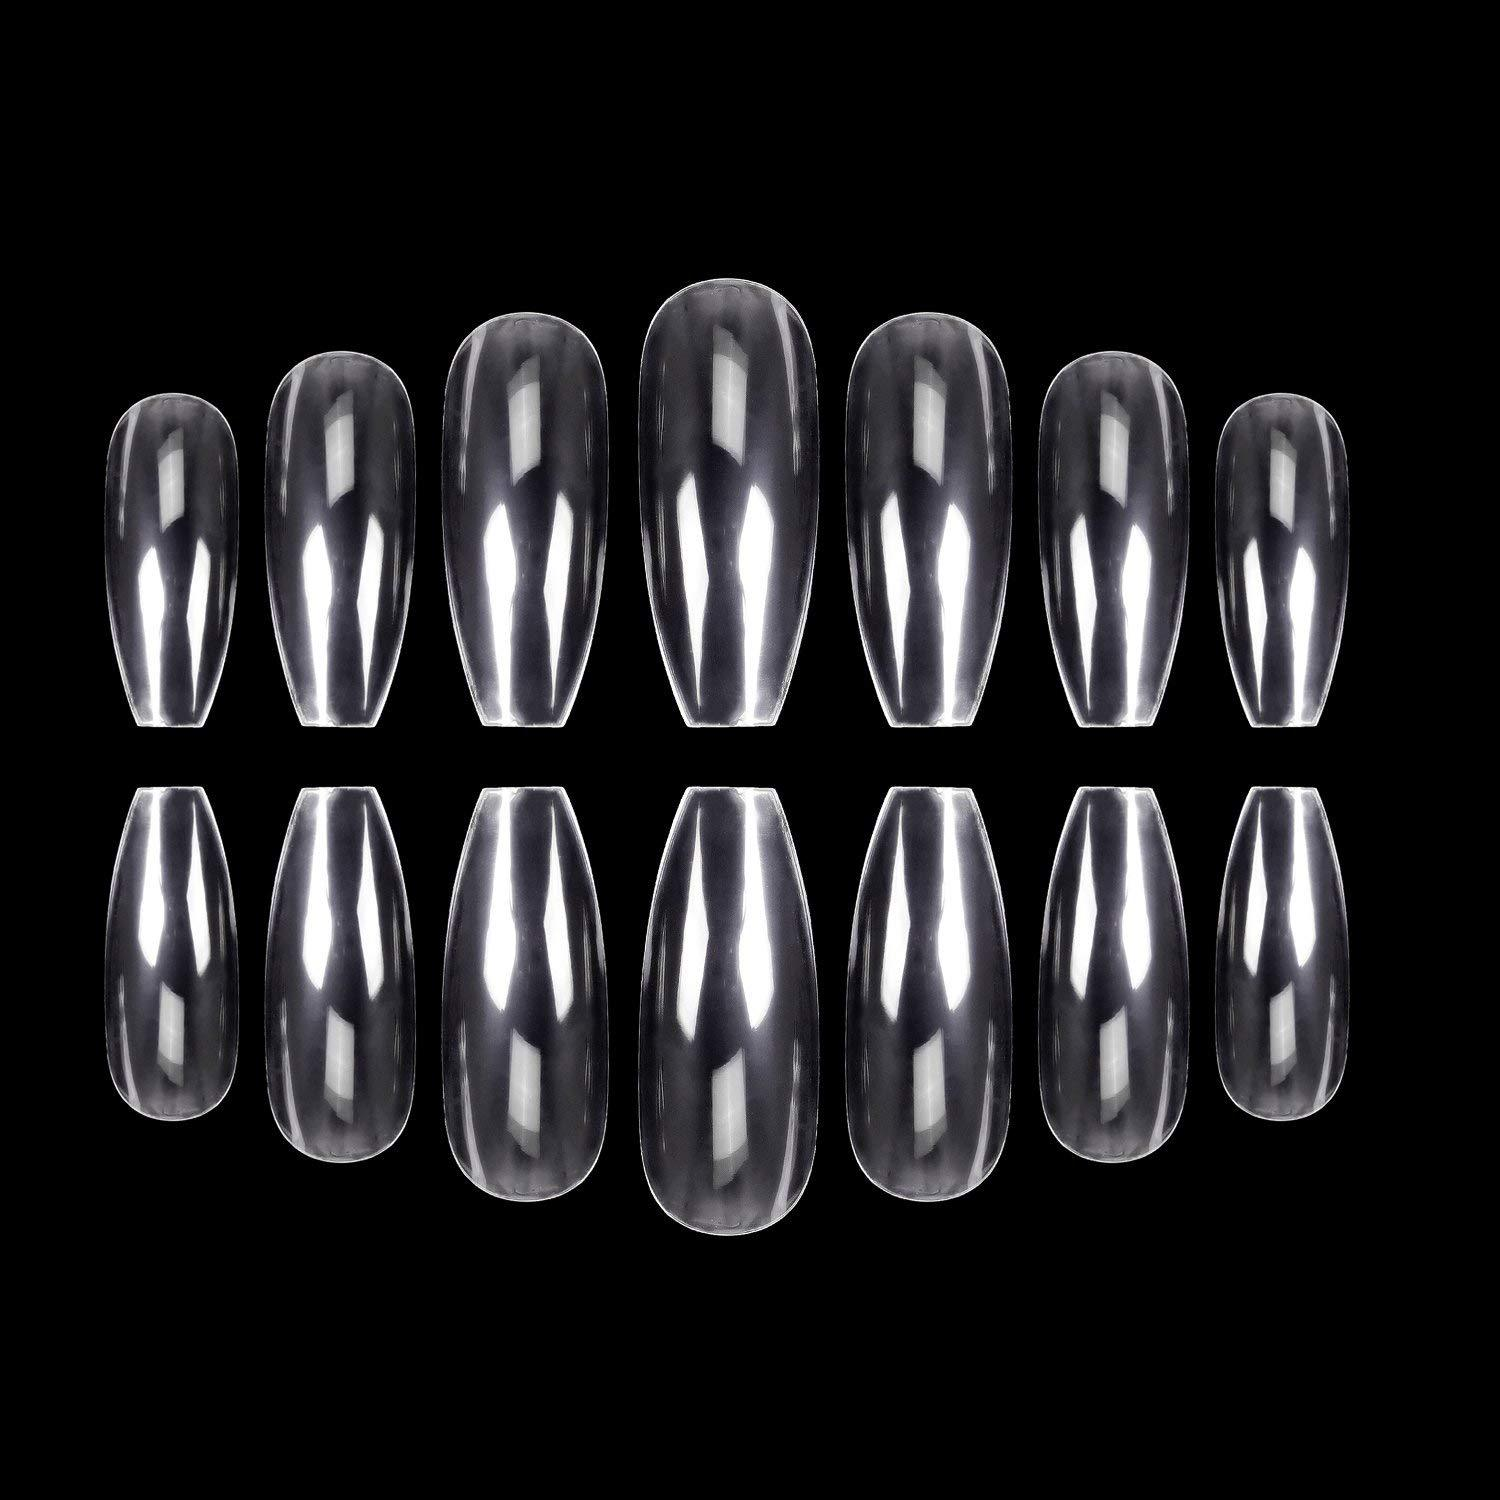 Manicure Stick Completely Ballet Nail Tip Refers To Nail Tip Transparent Color Fake Nails Nail Sticker French Coffin Nail Tip 50